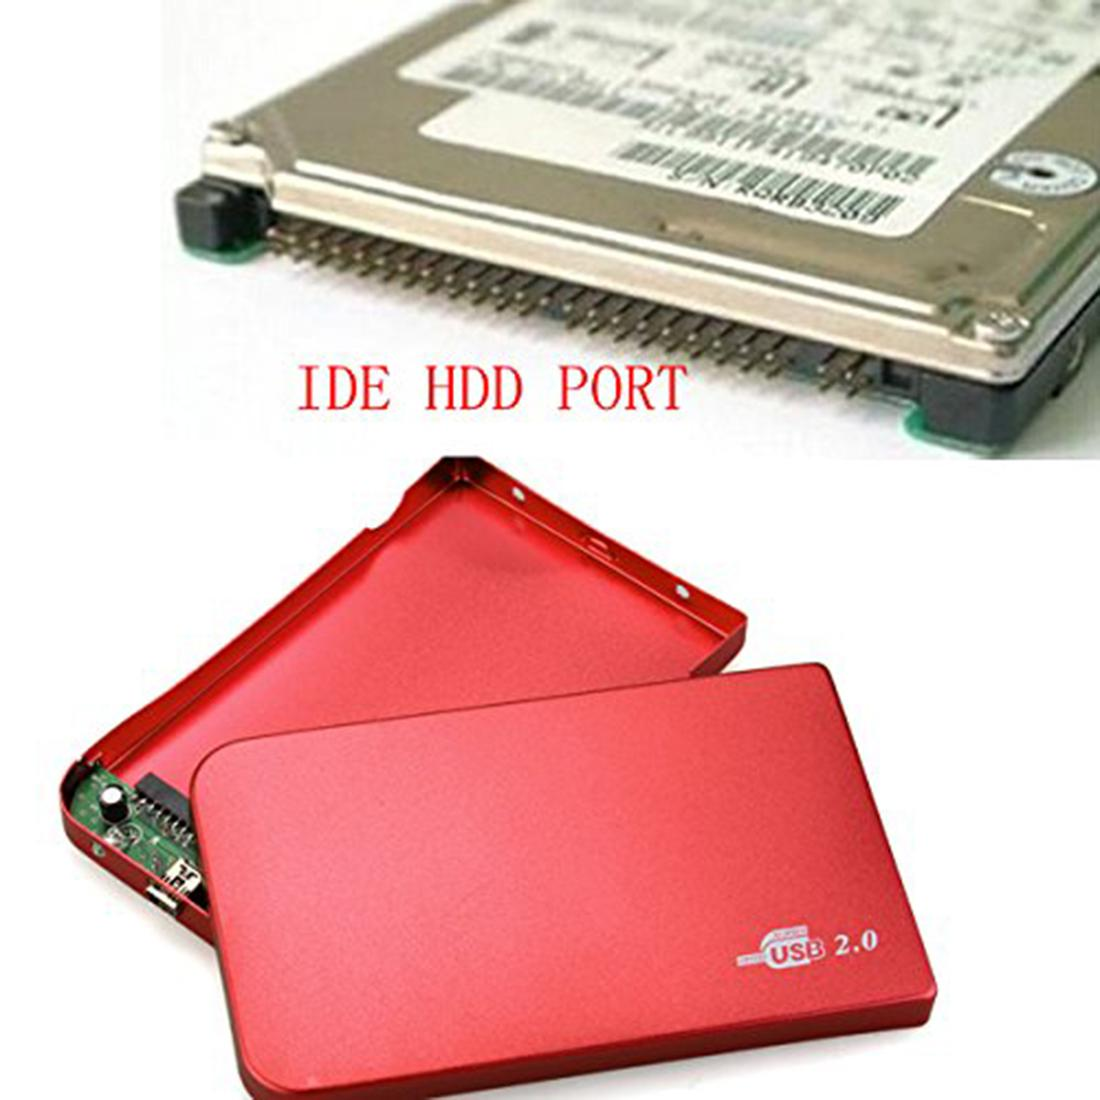 Low Cost Etmakit New Fashion Arrive Red External Hard Drive Casing Hdd Hardisk 25 Inch Sata Case Usb 20 Laptop Enclosure Ide Portable